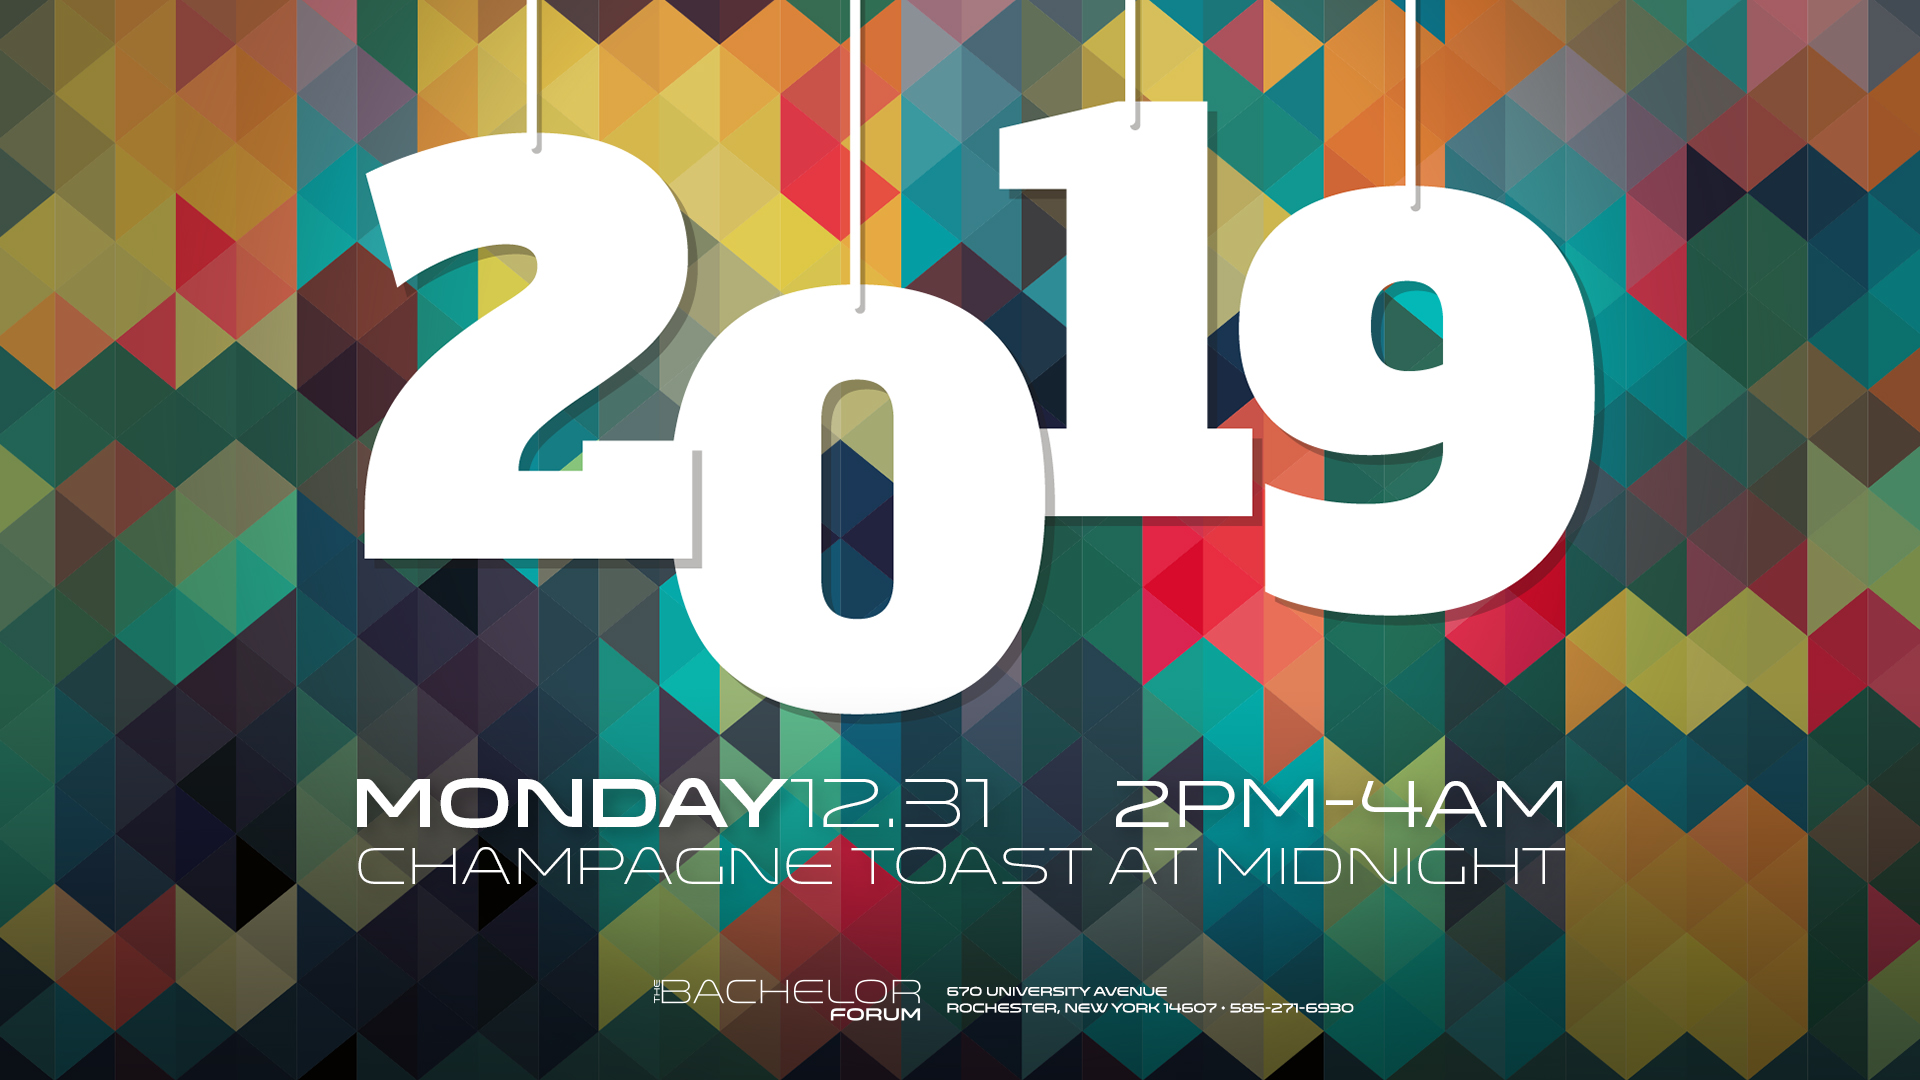 Rochester New Years Eve 2019 New Years Eve — Bachelor Forum   Rochester Gay Bar